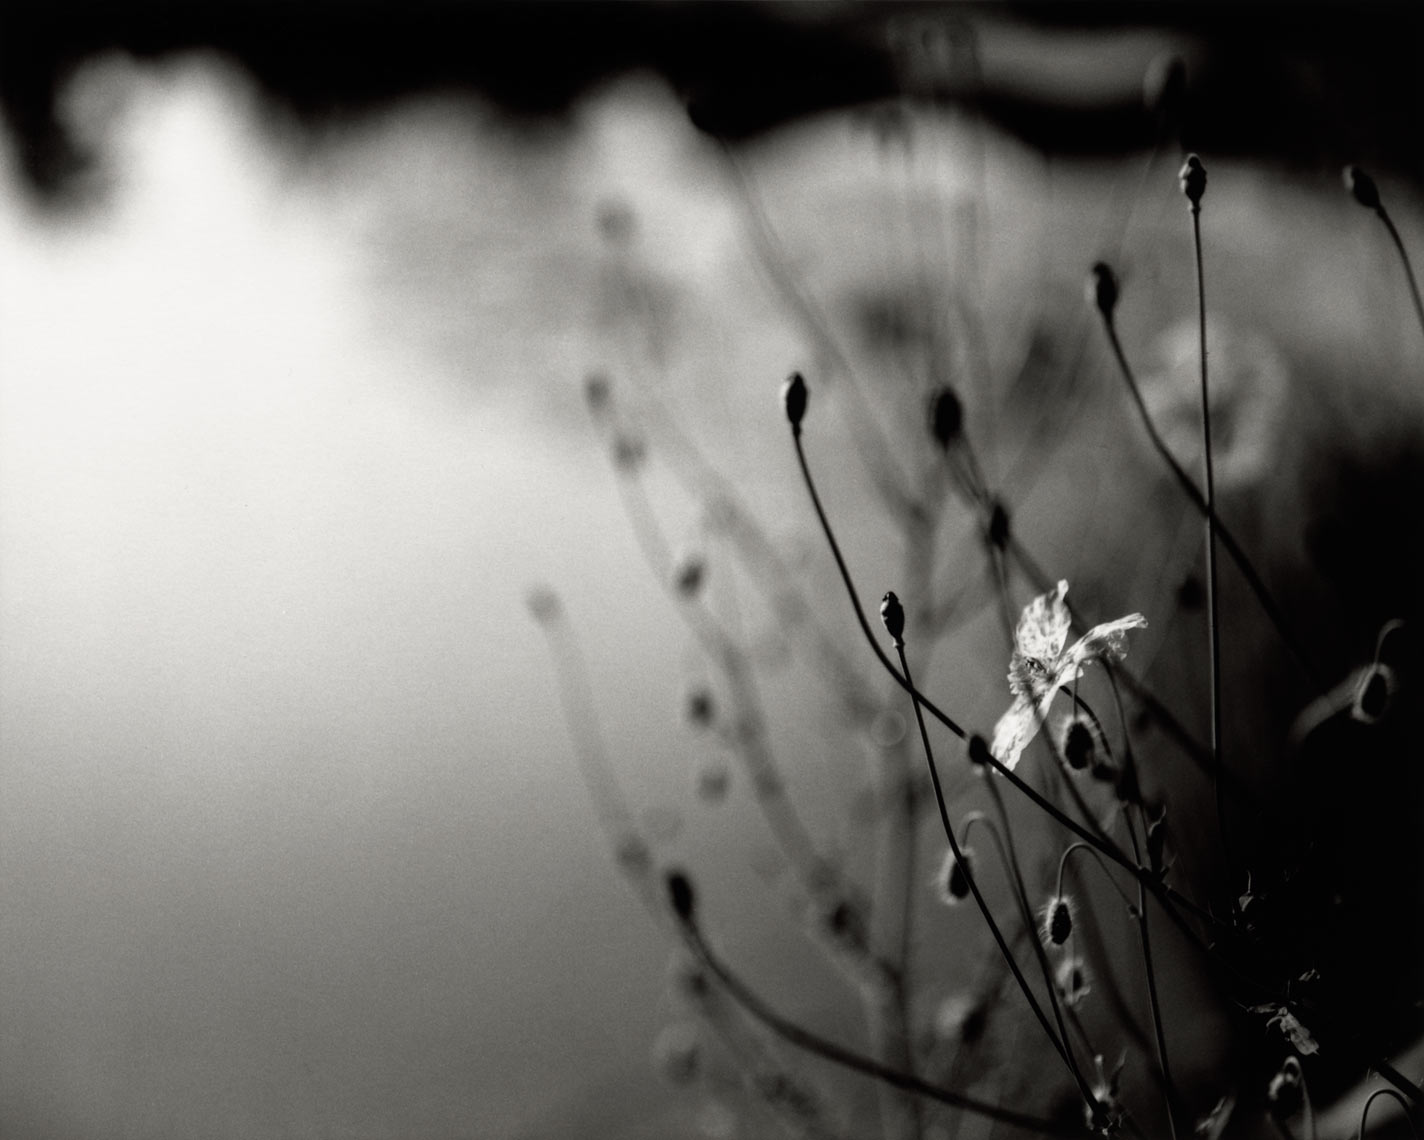 David Lebe; Armenian Poppy Pond, 1996, garden black and white photograph